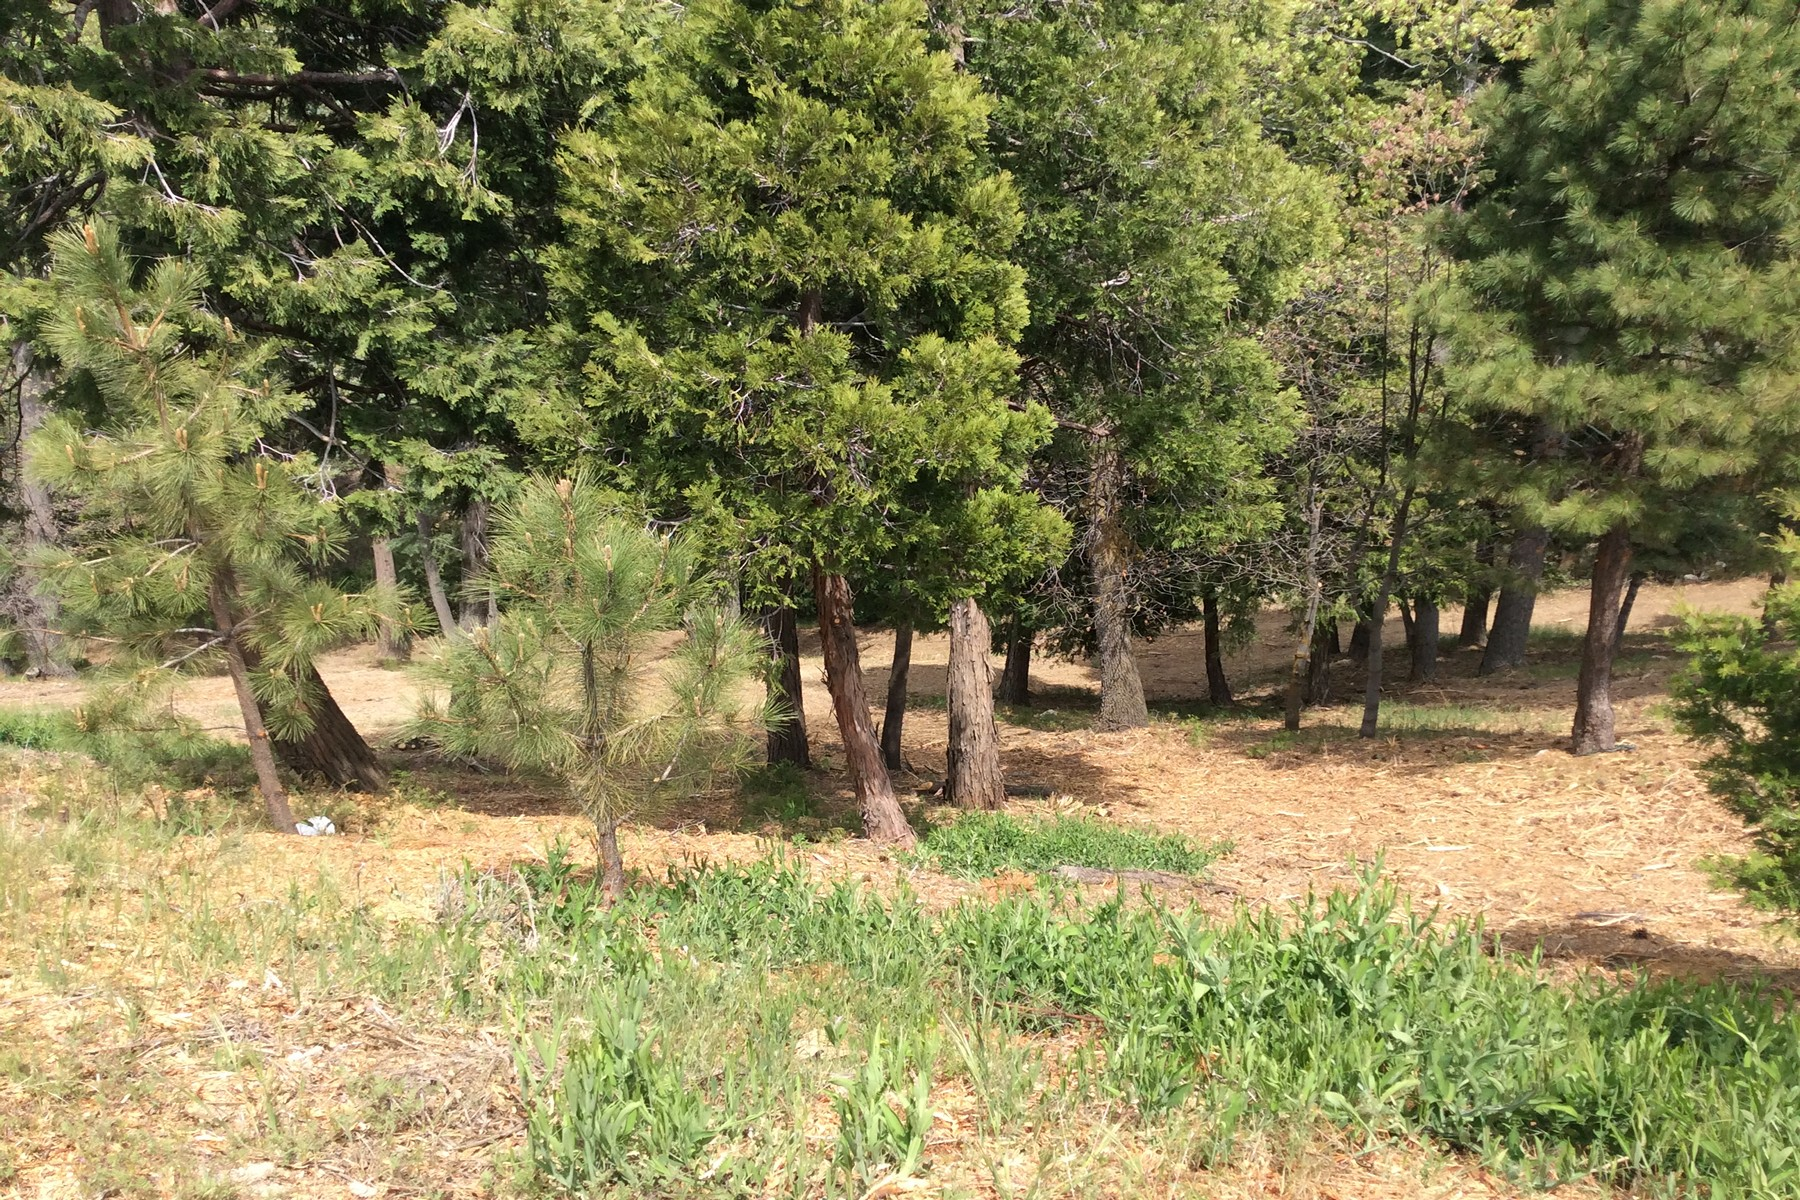 Land for Sale at 193 Mill Pond Lot 2 Road Lake Arrowhead, California, 92352 193 Mill Pond Lot 2 Road Lake Arrowhead, California 92352 United States